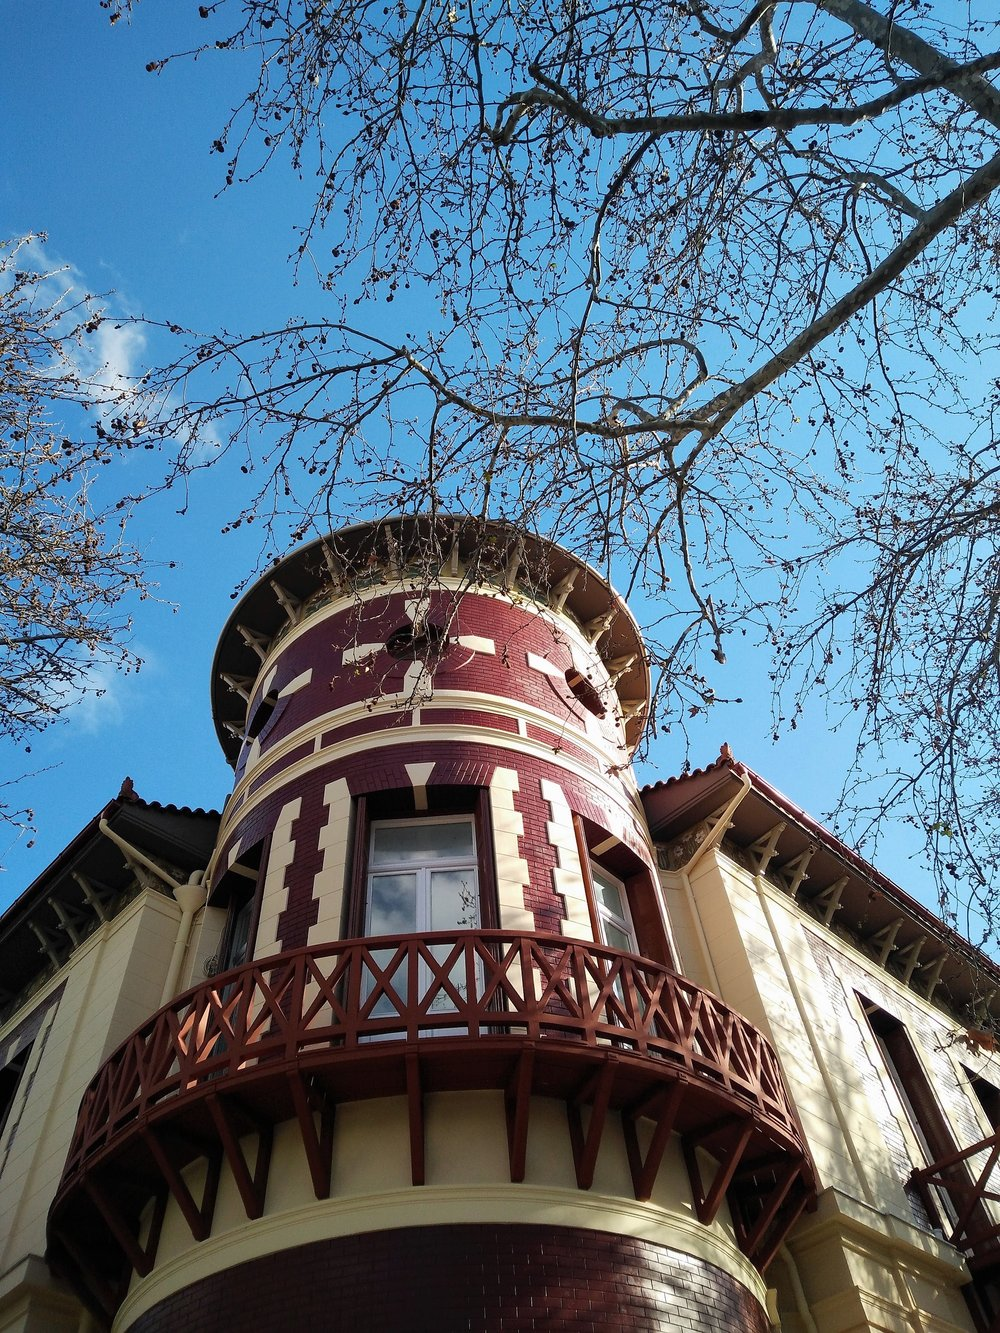 Amazing architecture in the neighborhood of Kifissia